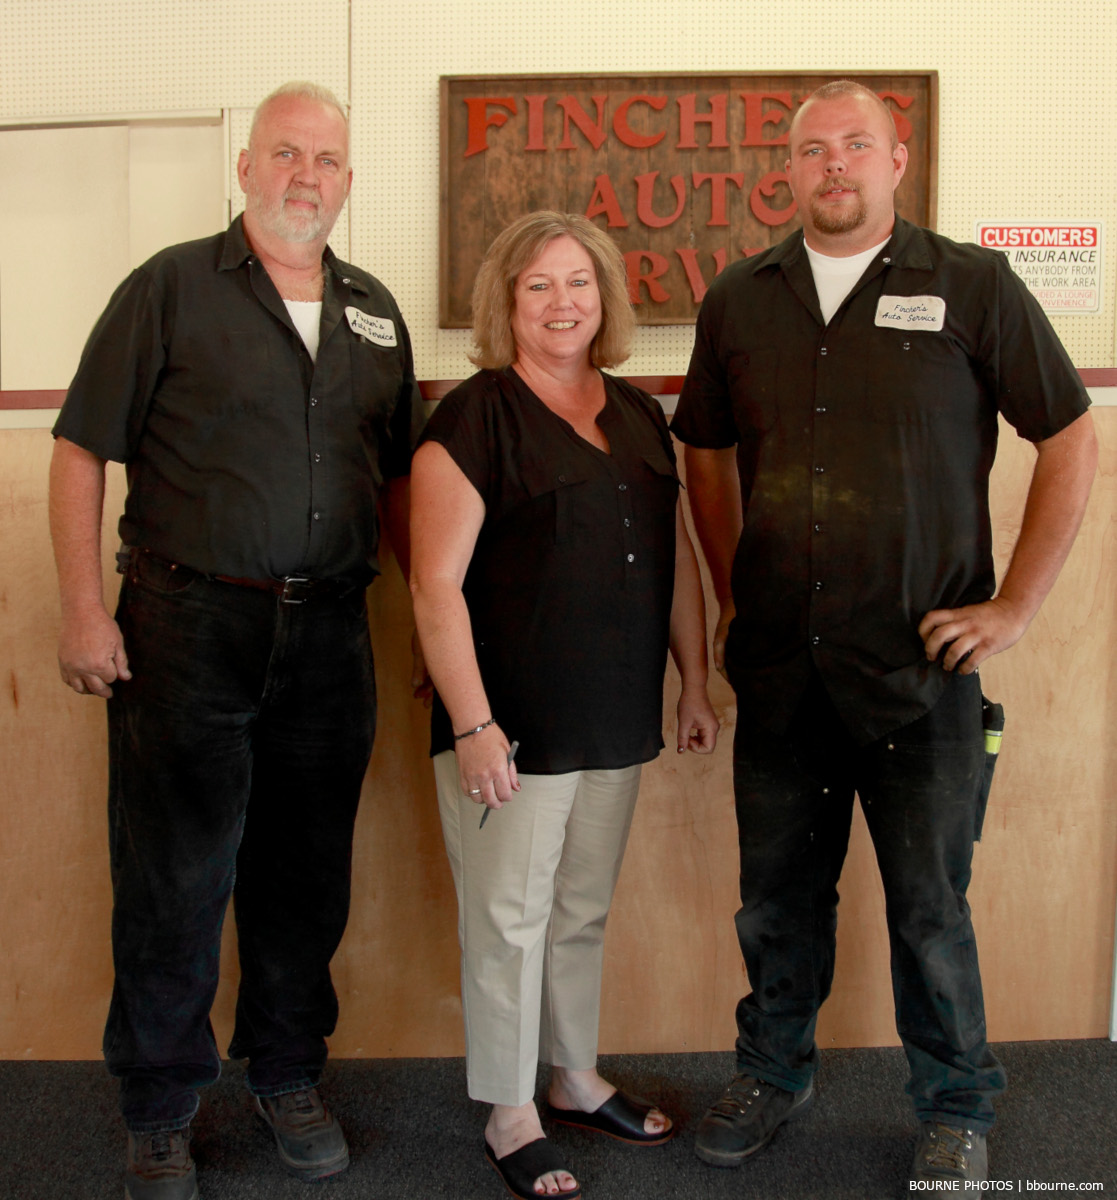 two men and one woman standing and posing for picture. finchers auto rv.